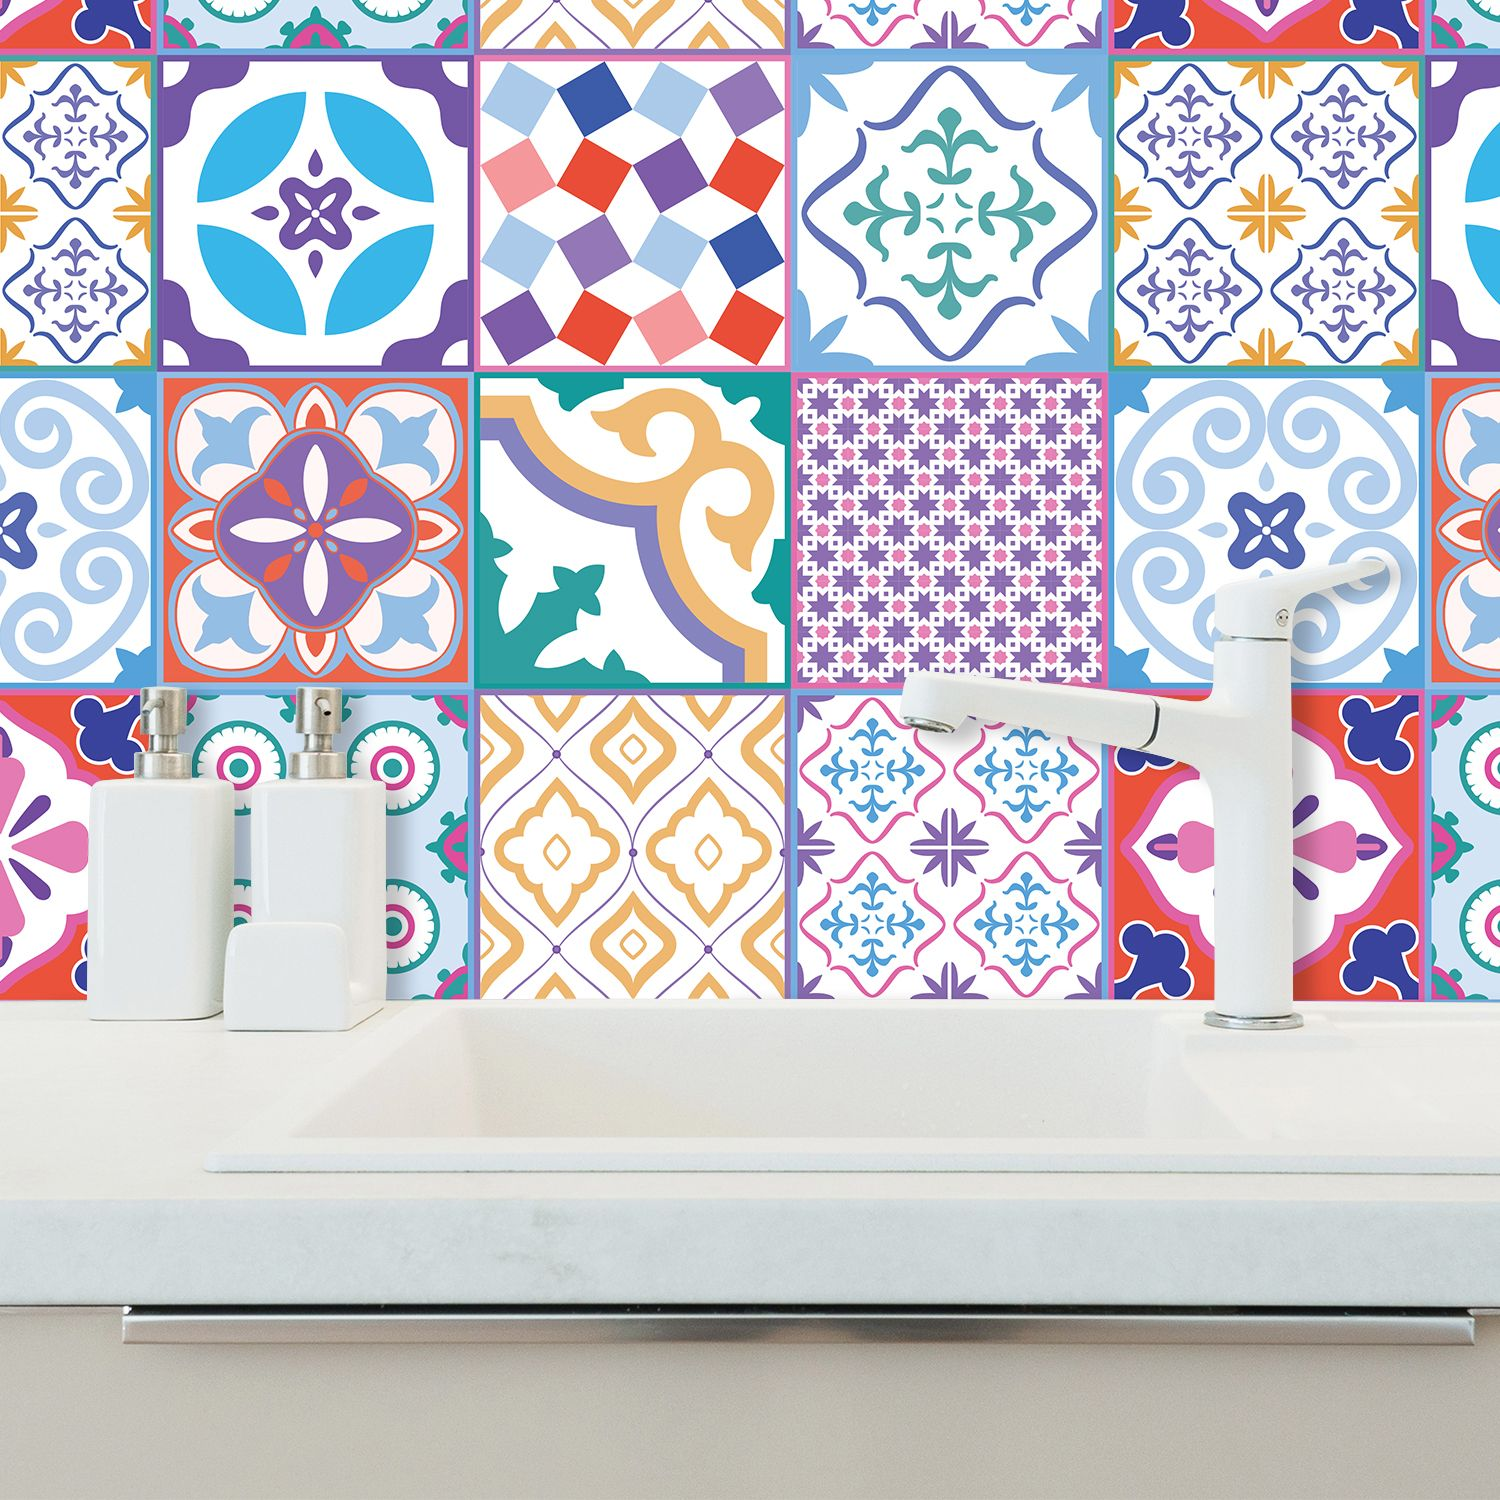 Classic Moroccan Colourful Mixed Tiles Wall Stickers Set 1 - 15 x 15 cm (6 x 6 inches) - 24 pcs. Wall Art, DIY Art, Home Decorations, Decals